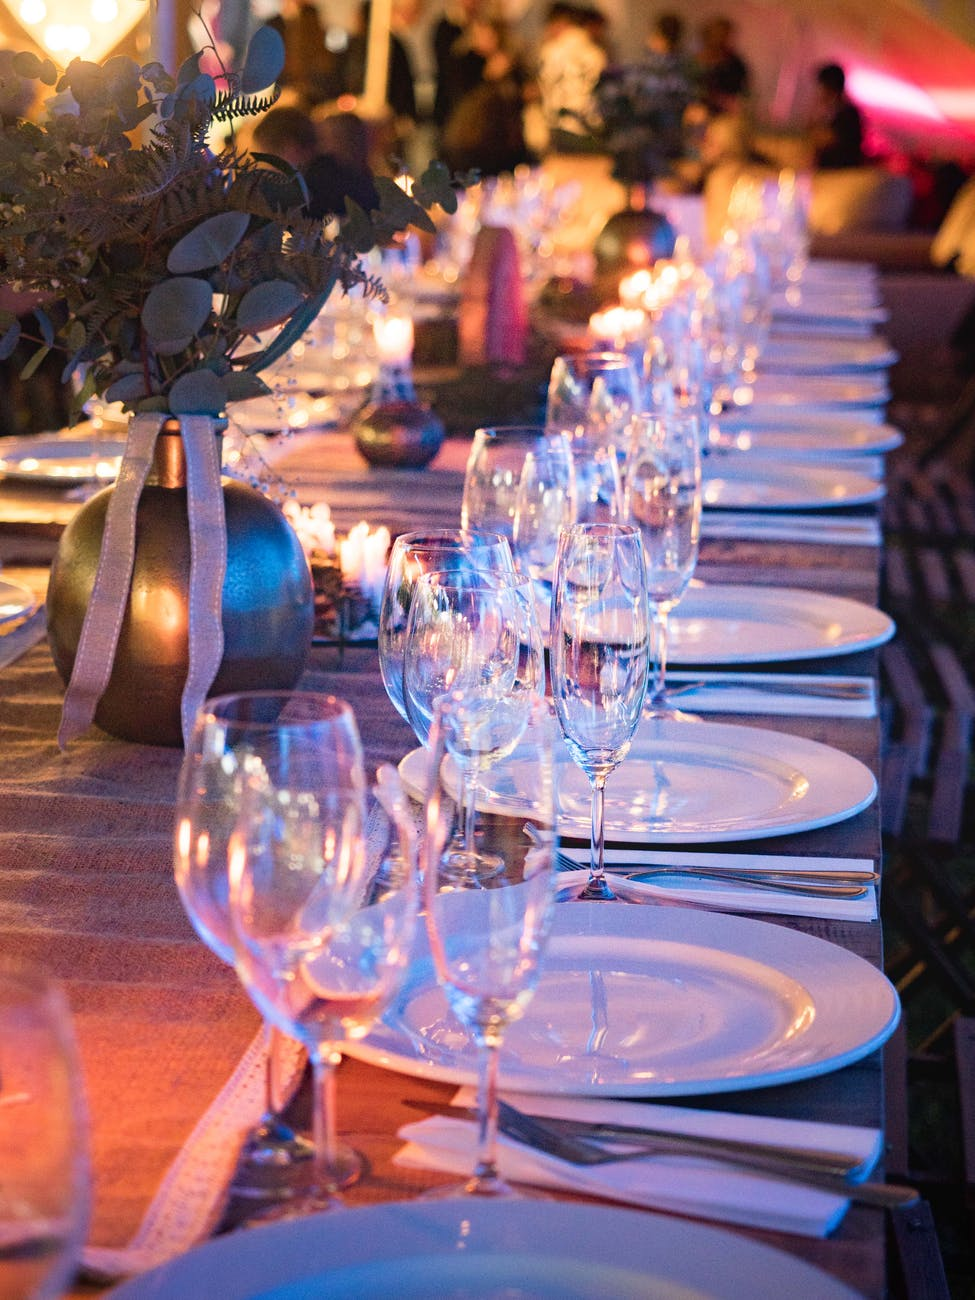 plates and wine glass on table